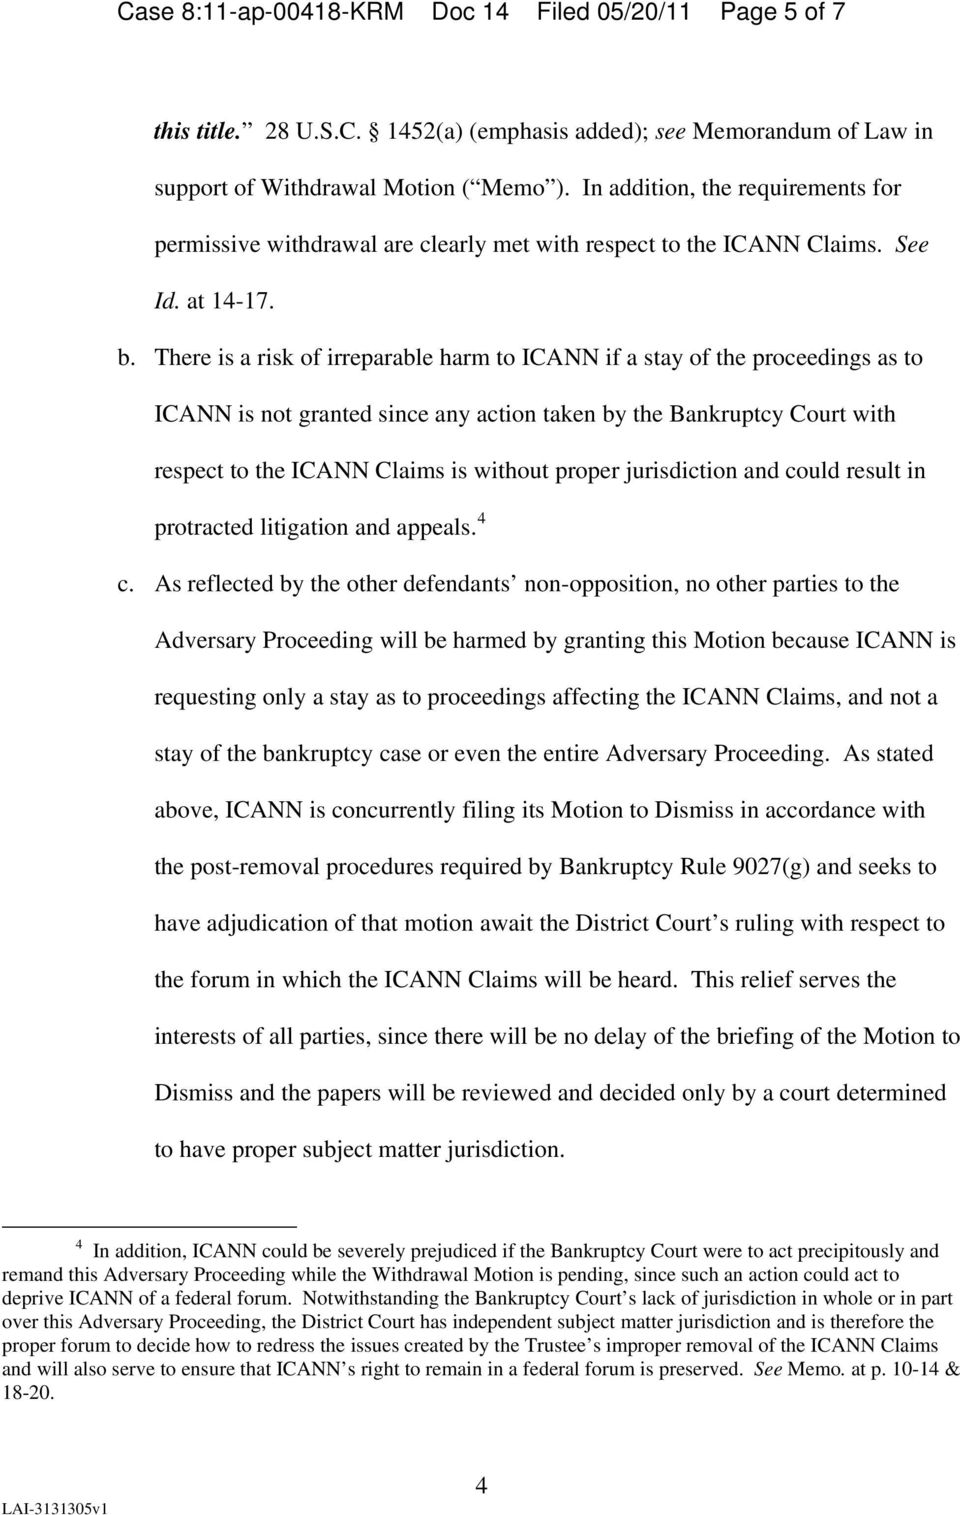 There is a risk of irreparable harm to ICANN if a stay of the proceedings as to ICANN is not granted since any action taken by the Bankruptcy Court with respect to the ICANN Claims is without proper